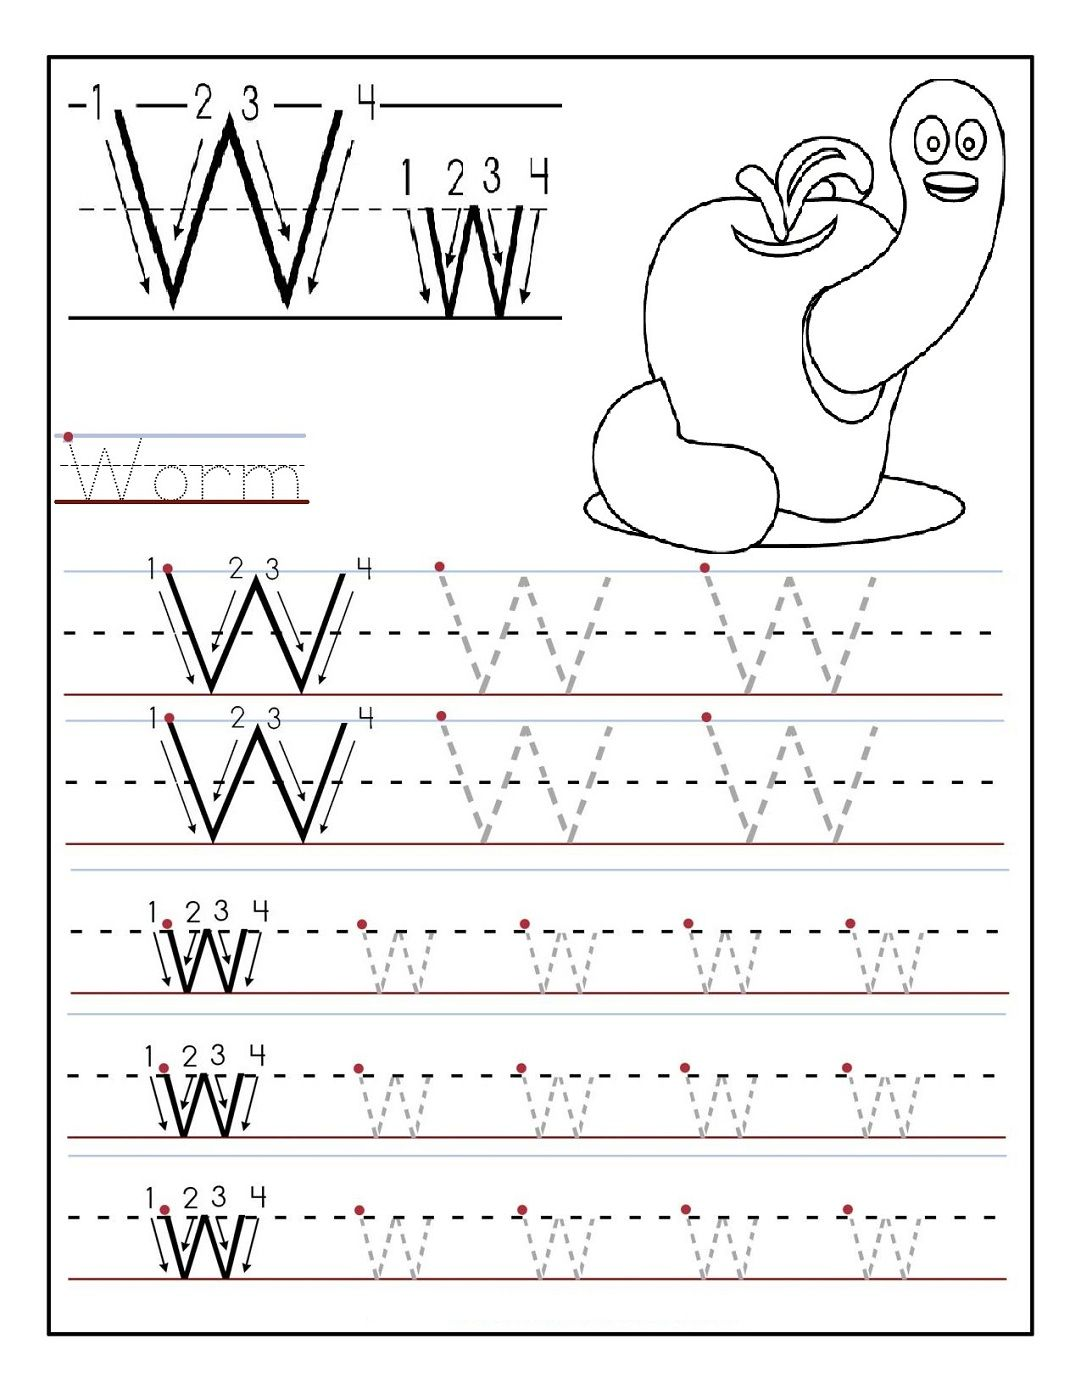 Kindergarten Alphabet Worksheets Printable | Activity Shelter | Kids ...